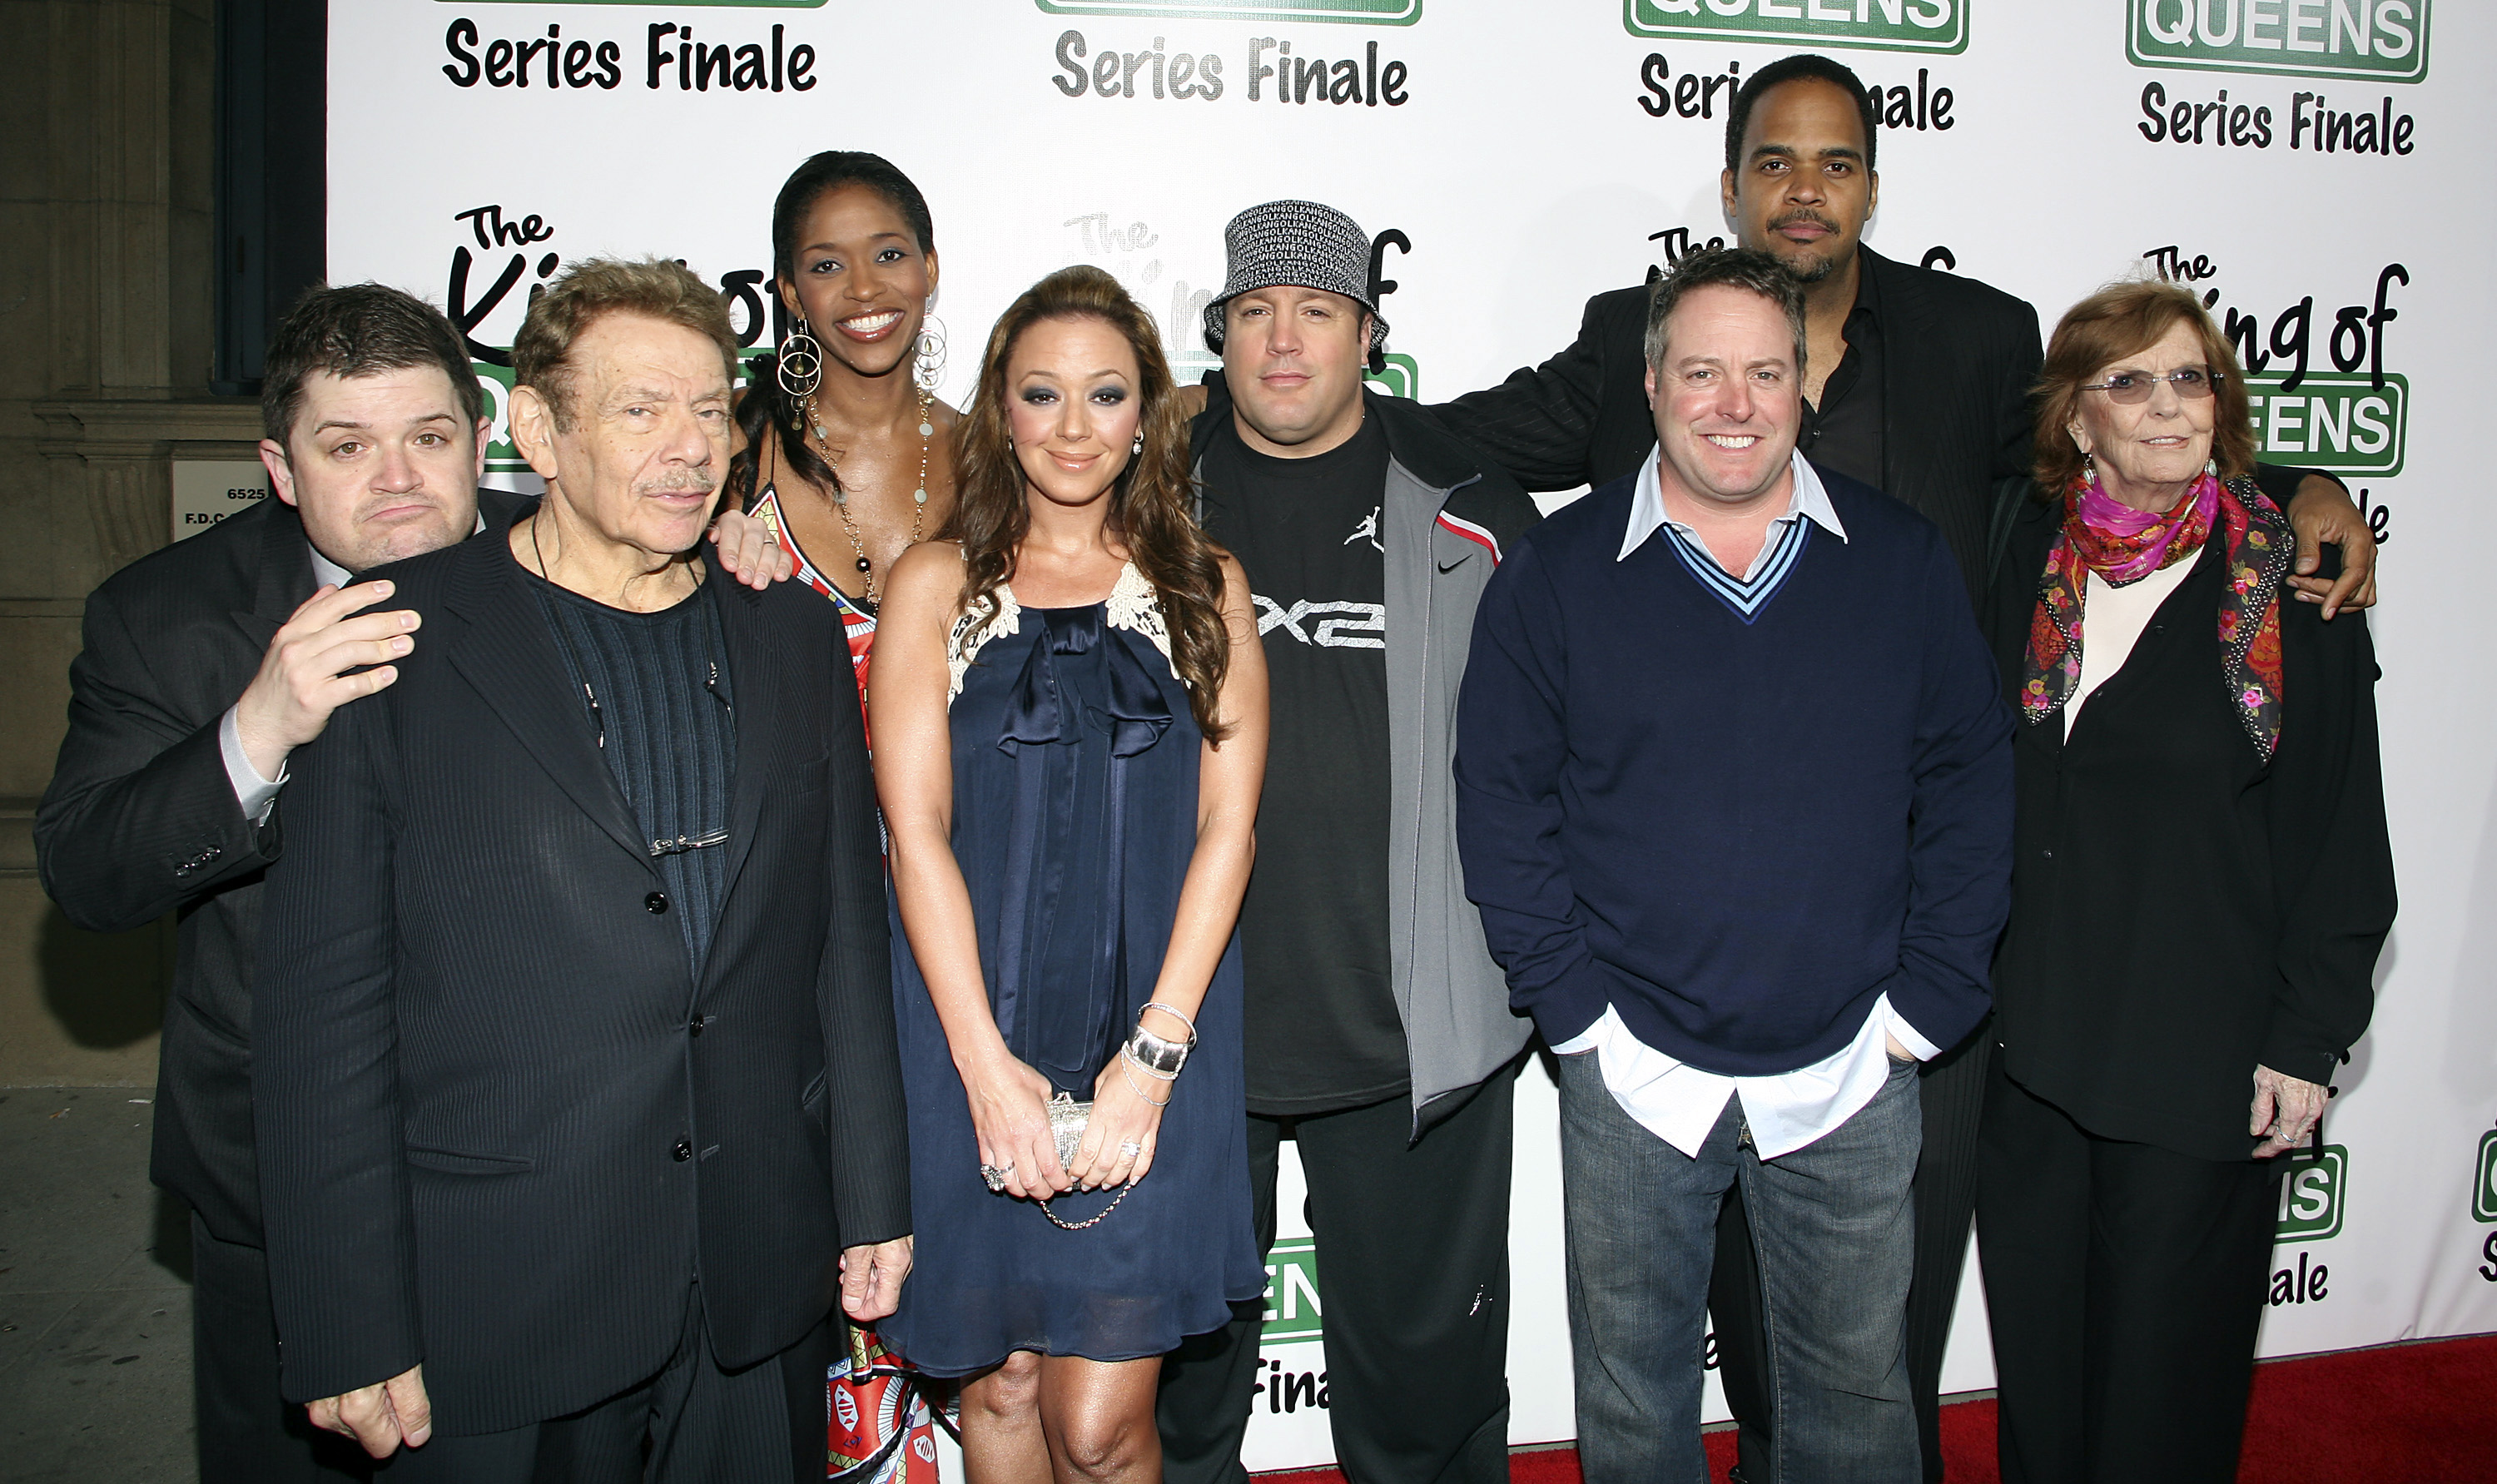 How Does King Of Queens End Find Out What Happens In The Series Finale